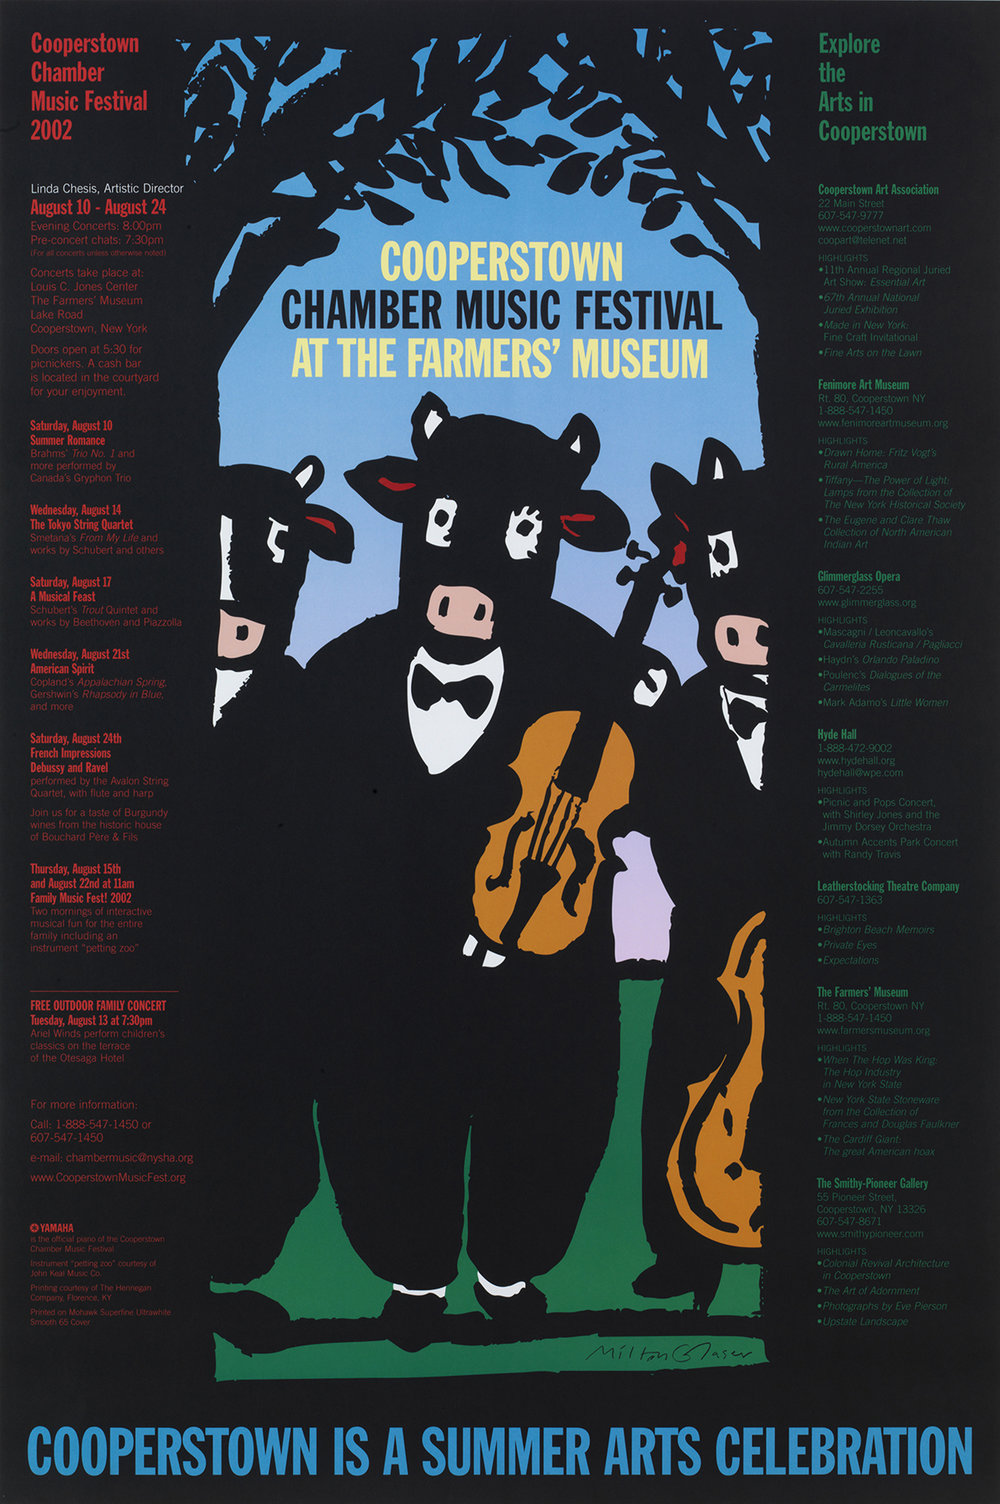 2002_Cooperstown Chamber Music Festival at the Farmer's Museum_1200px.jpg